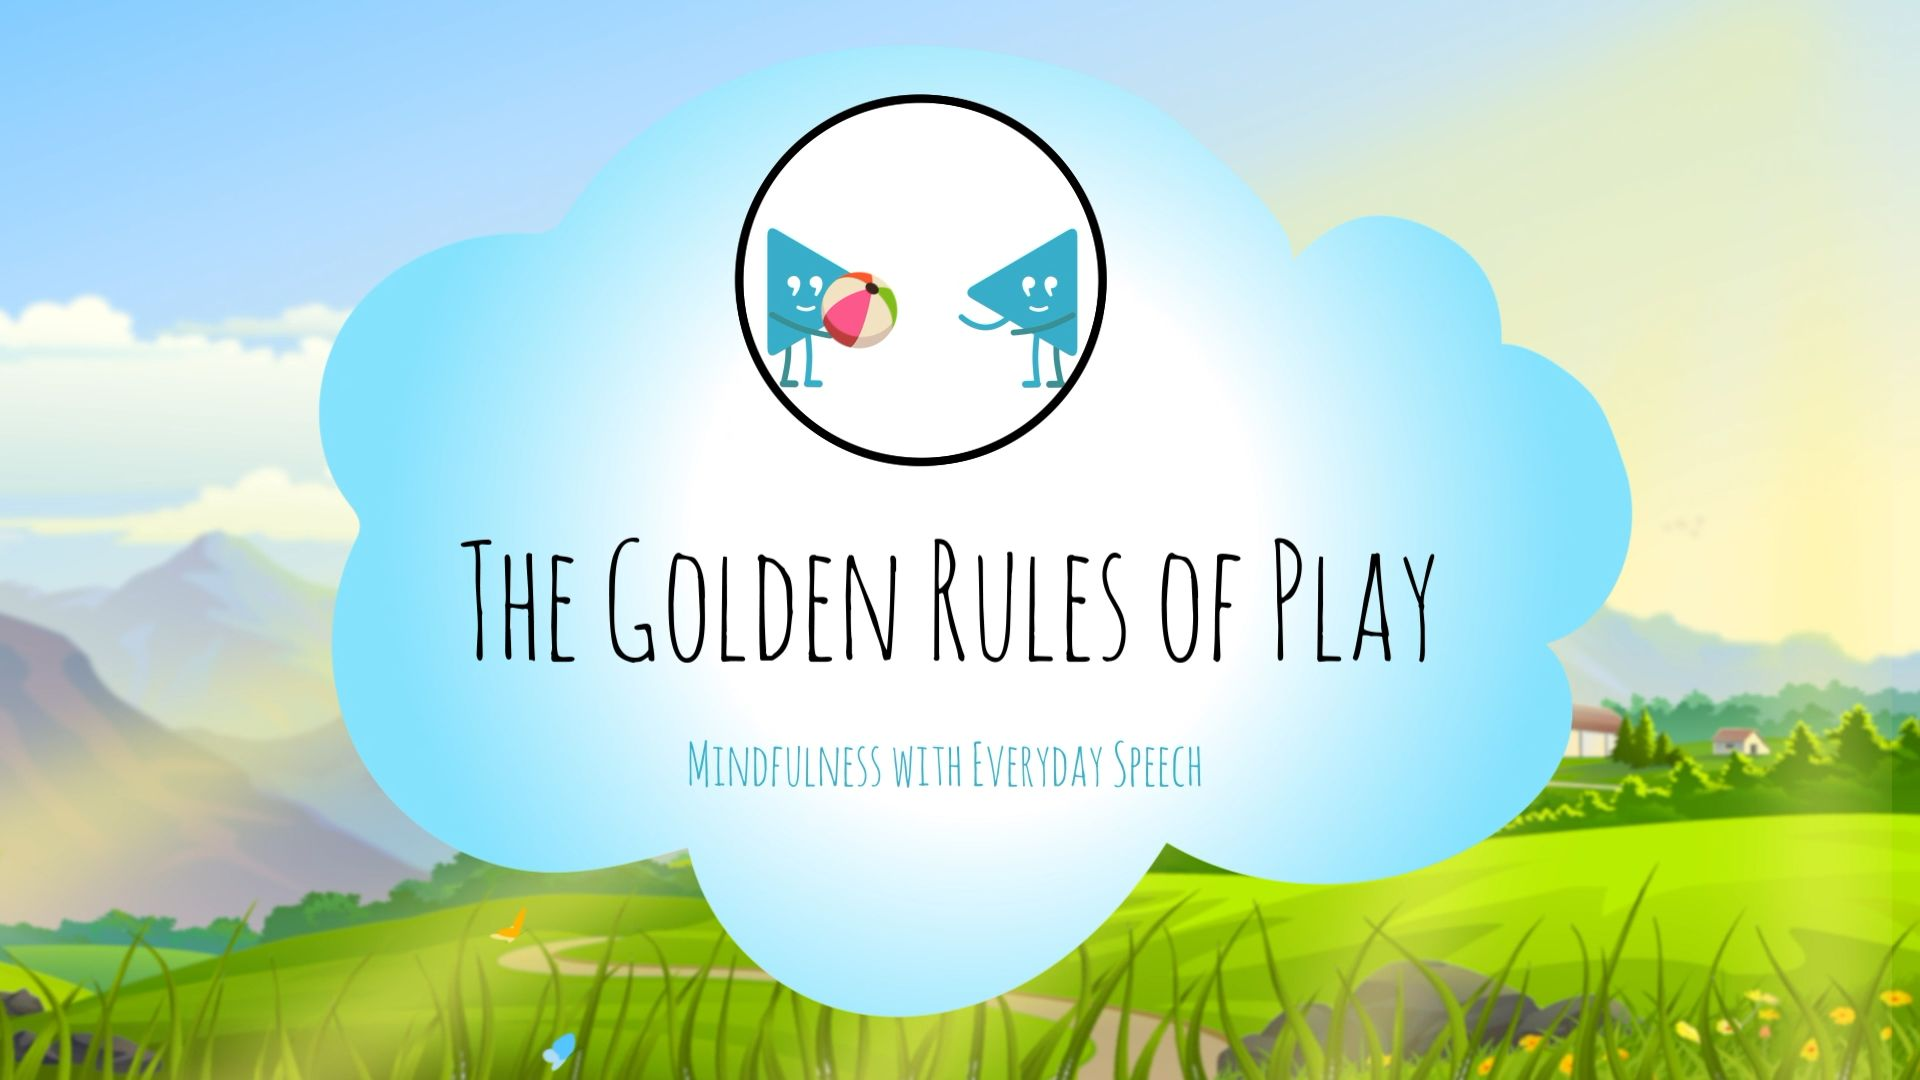 The Golden Rules of Play